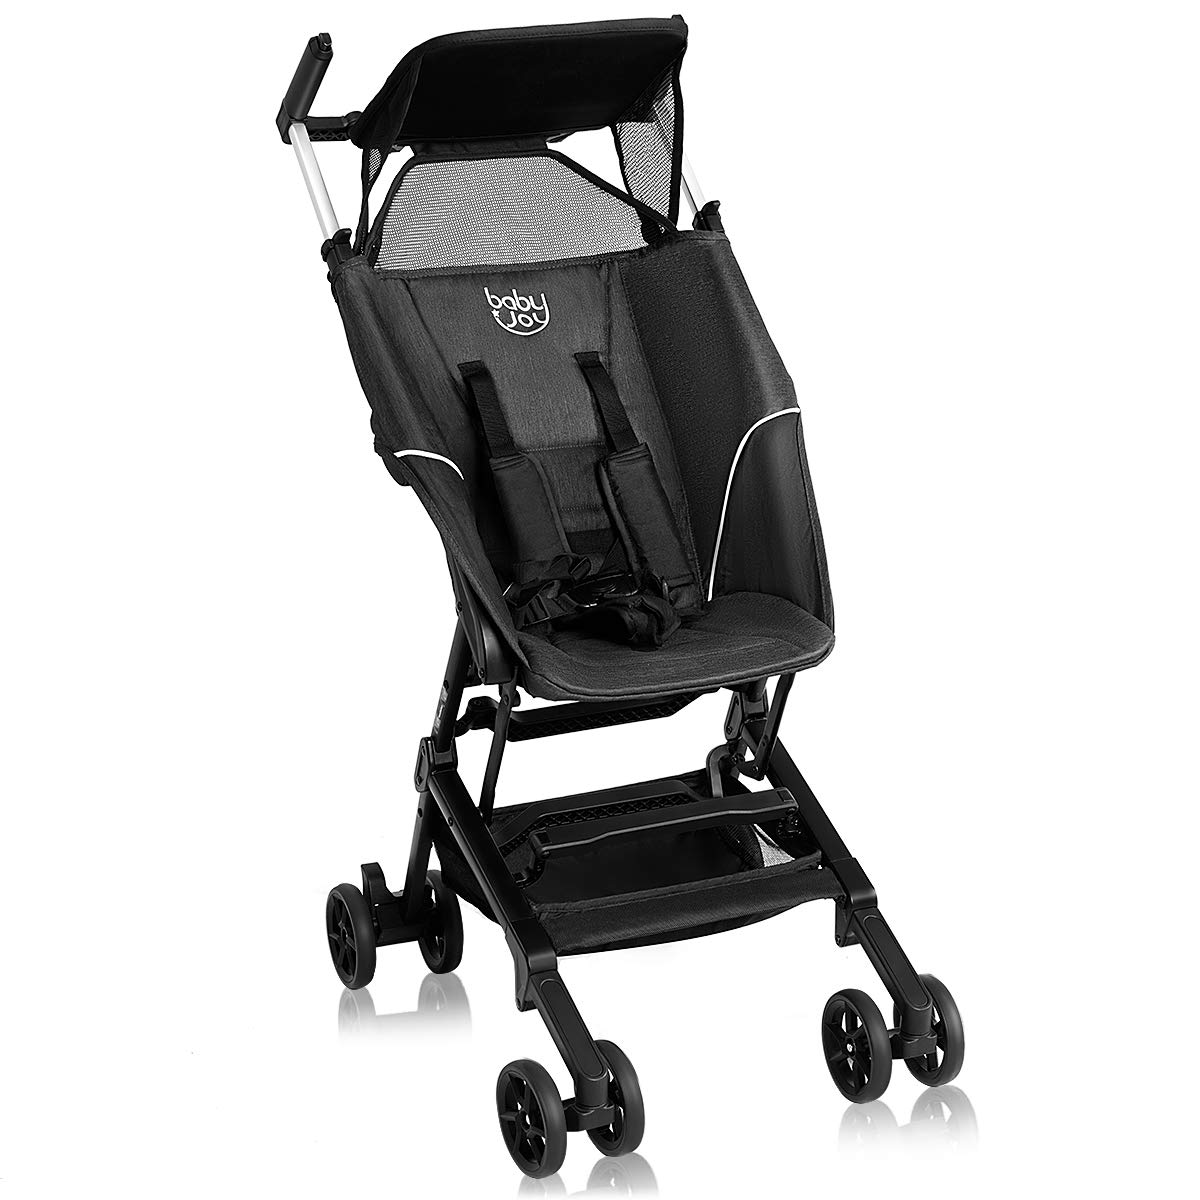 BABY JOY Pocket Stroller, Extra Lightweight Compact Folding Stroller, Aluminum Structure, Five-Point Harness, Easy Handling for Travel, Airplane Compartment, Includes Travel Bag, No Assembly, Black